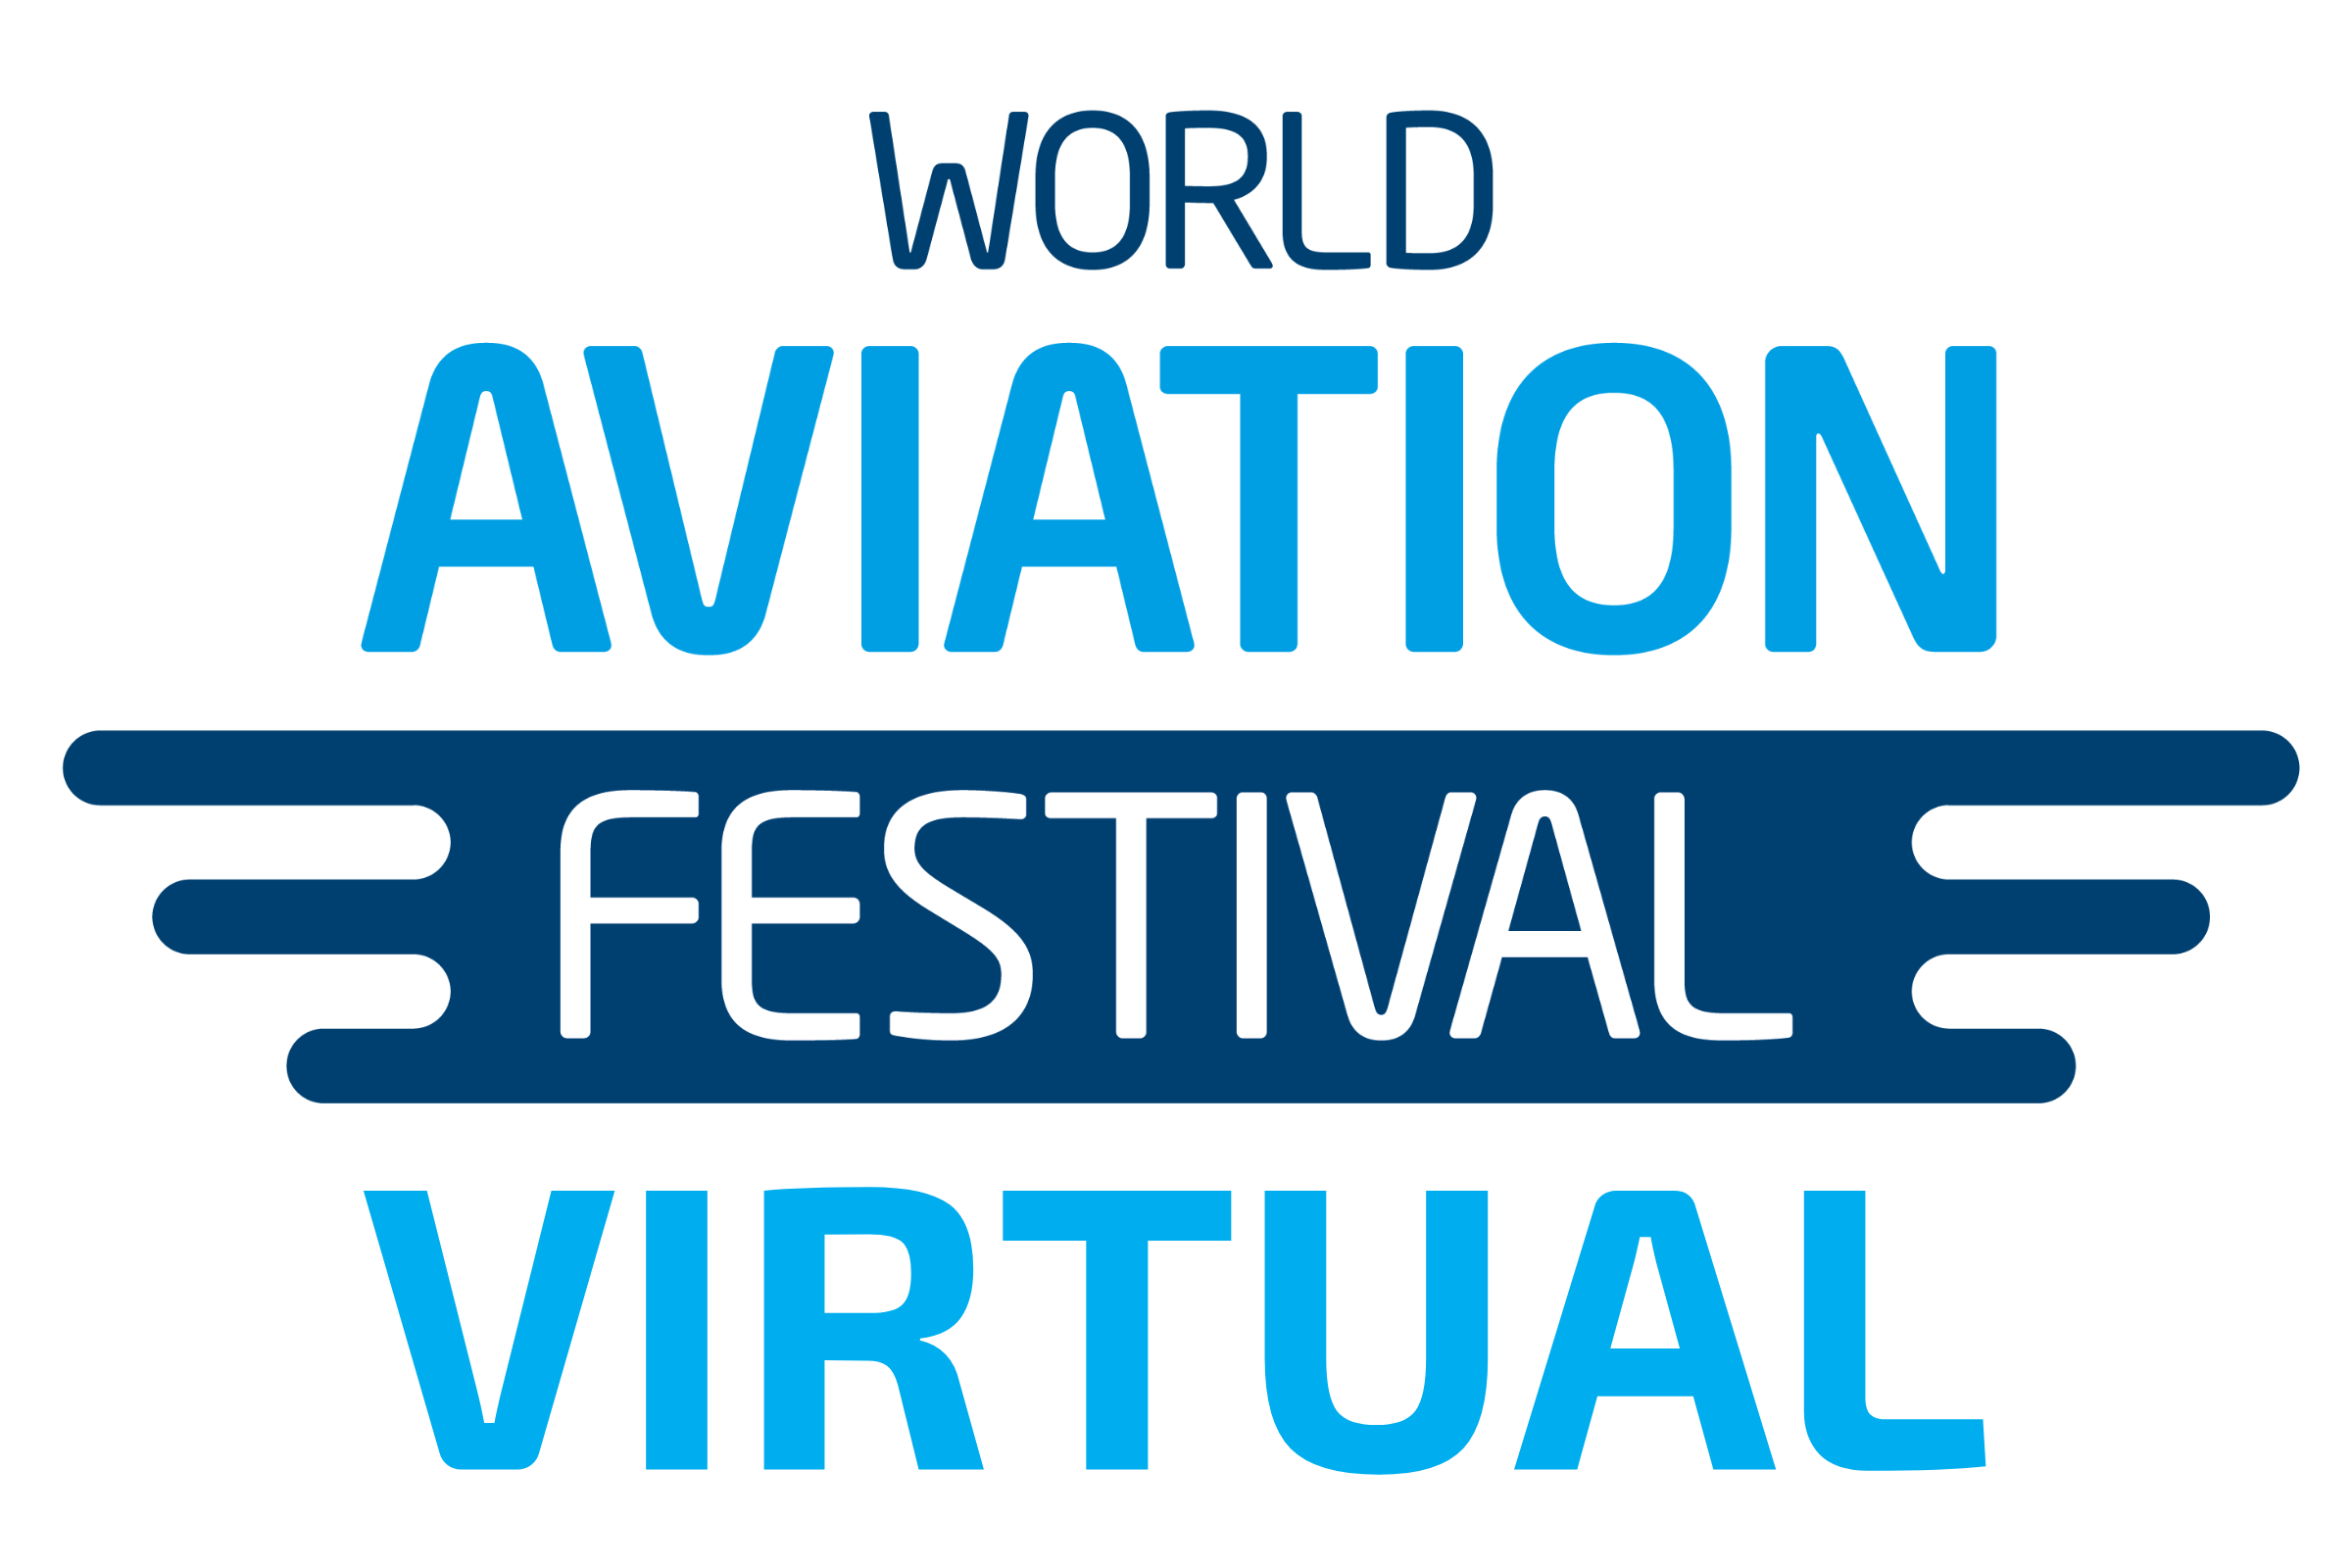 World Aviation Festival Virtual 2020